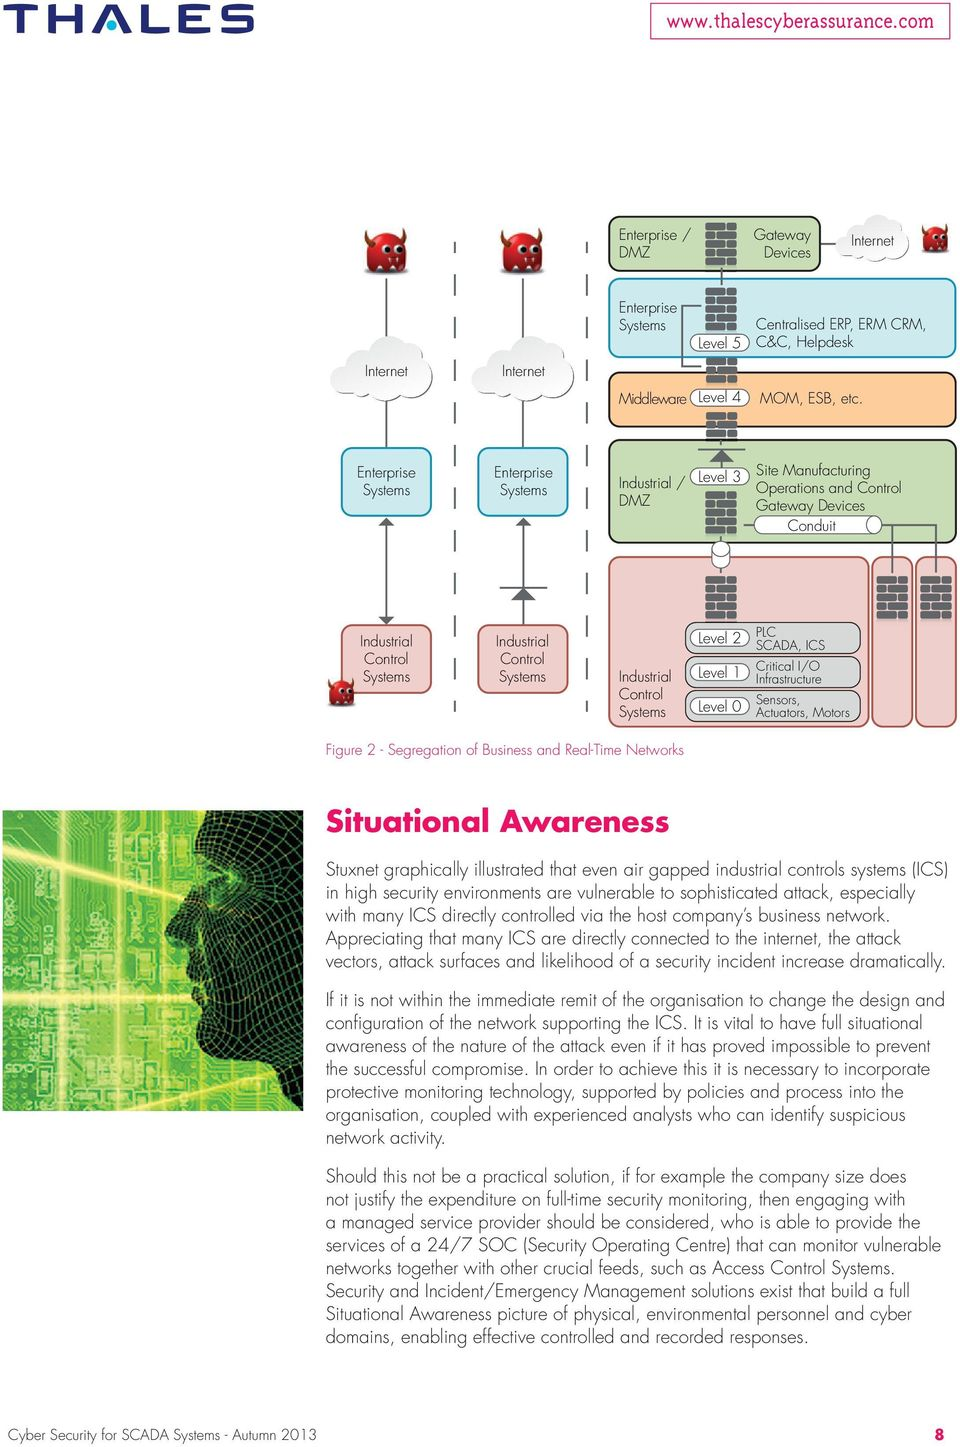 Control Systems Level 2 Level 1 Level 0 PLC SCADA, ICS Critical I/O Infrastructure Sensors, Actuators, Motors Figure 2 - Segregation of Business and Real-Time Networks Situational Awareness Stuxnet